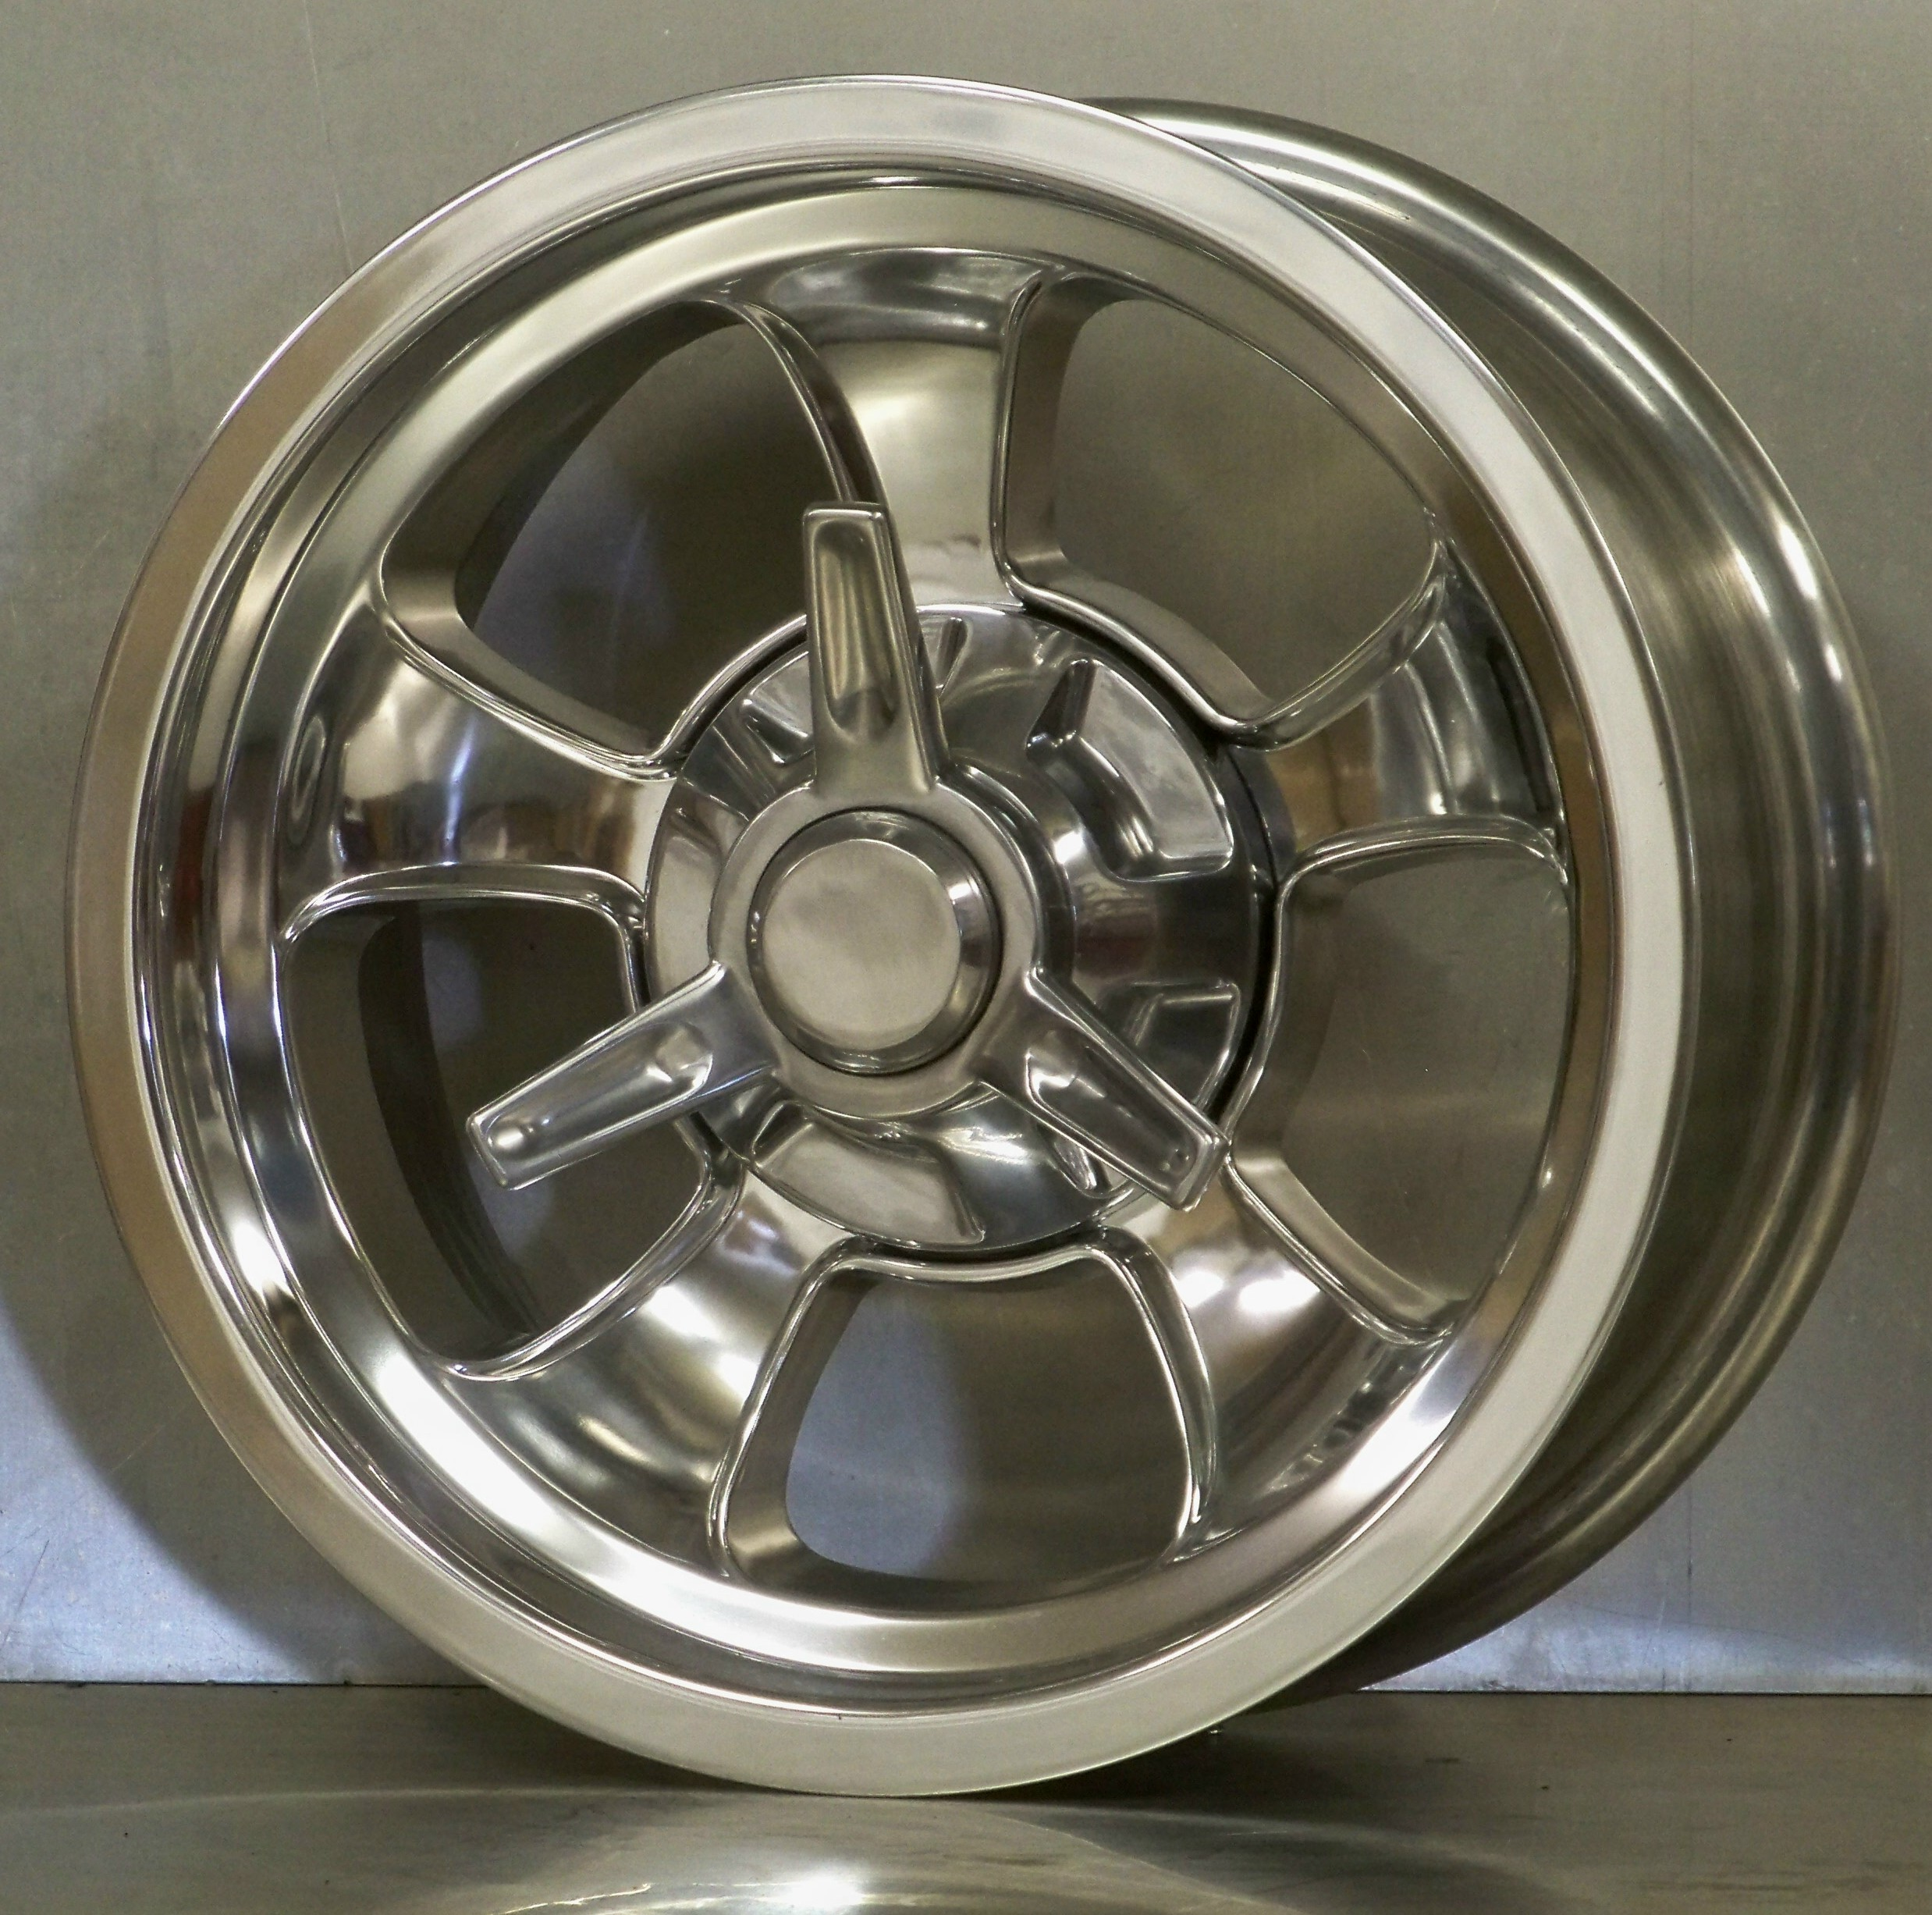 Alloy Cruzer wheel fully polished with spinner